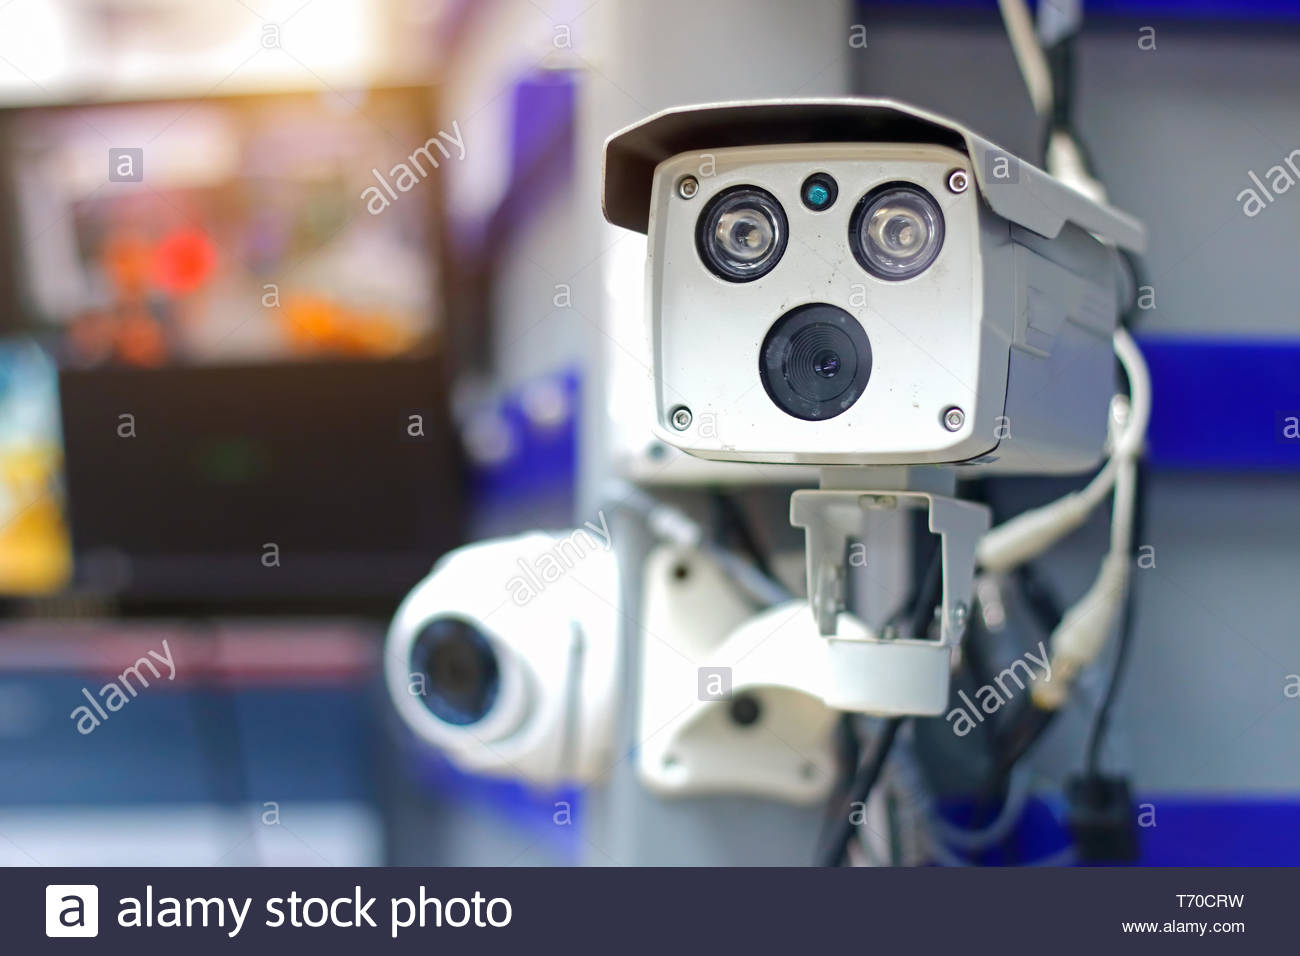 CCTV camera (closed circuit camera) surveillance Safety system with bokeh background - Stock Image